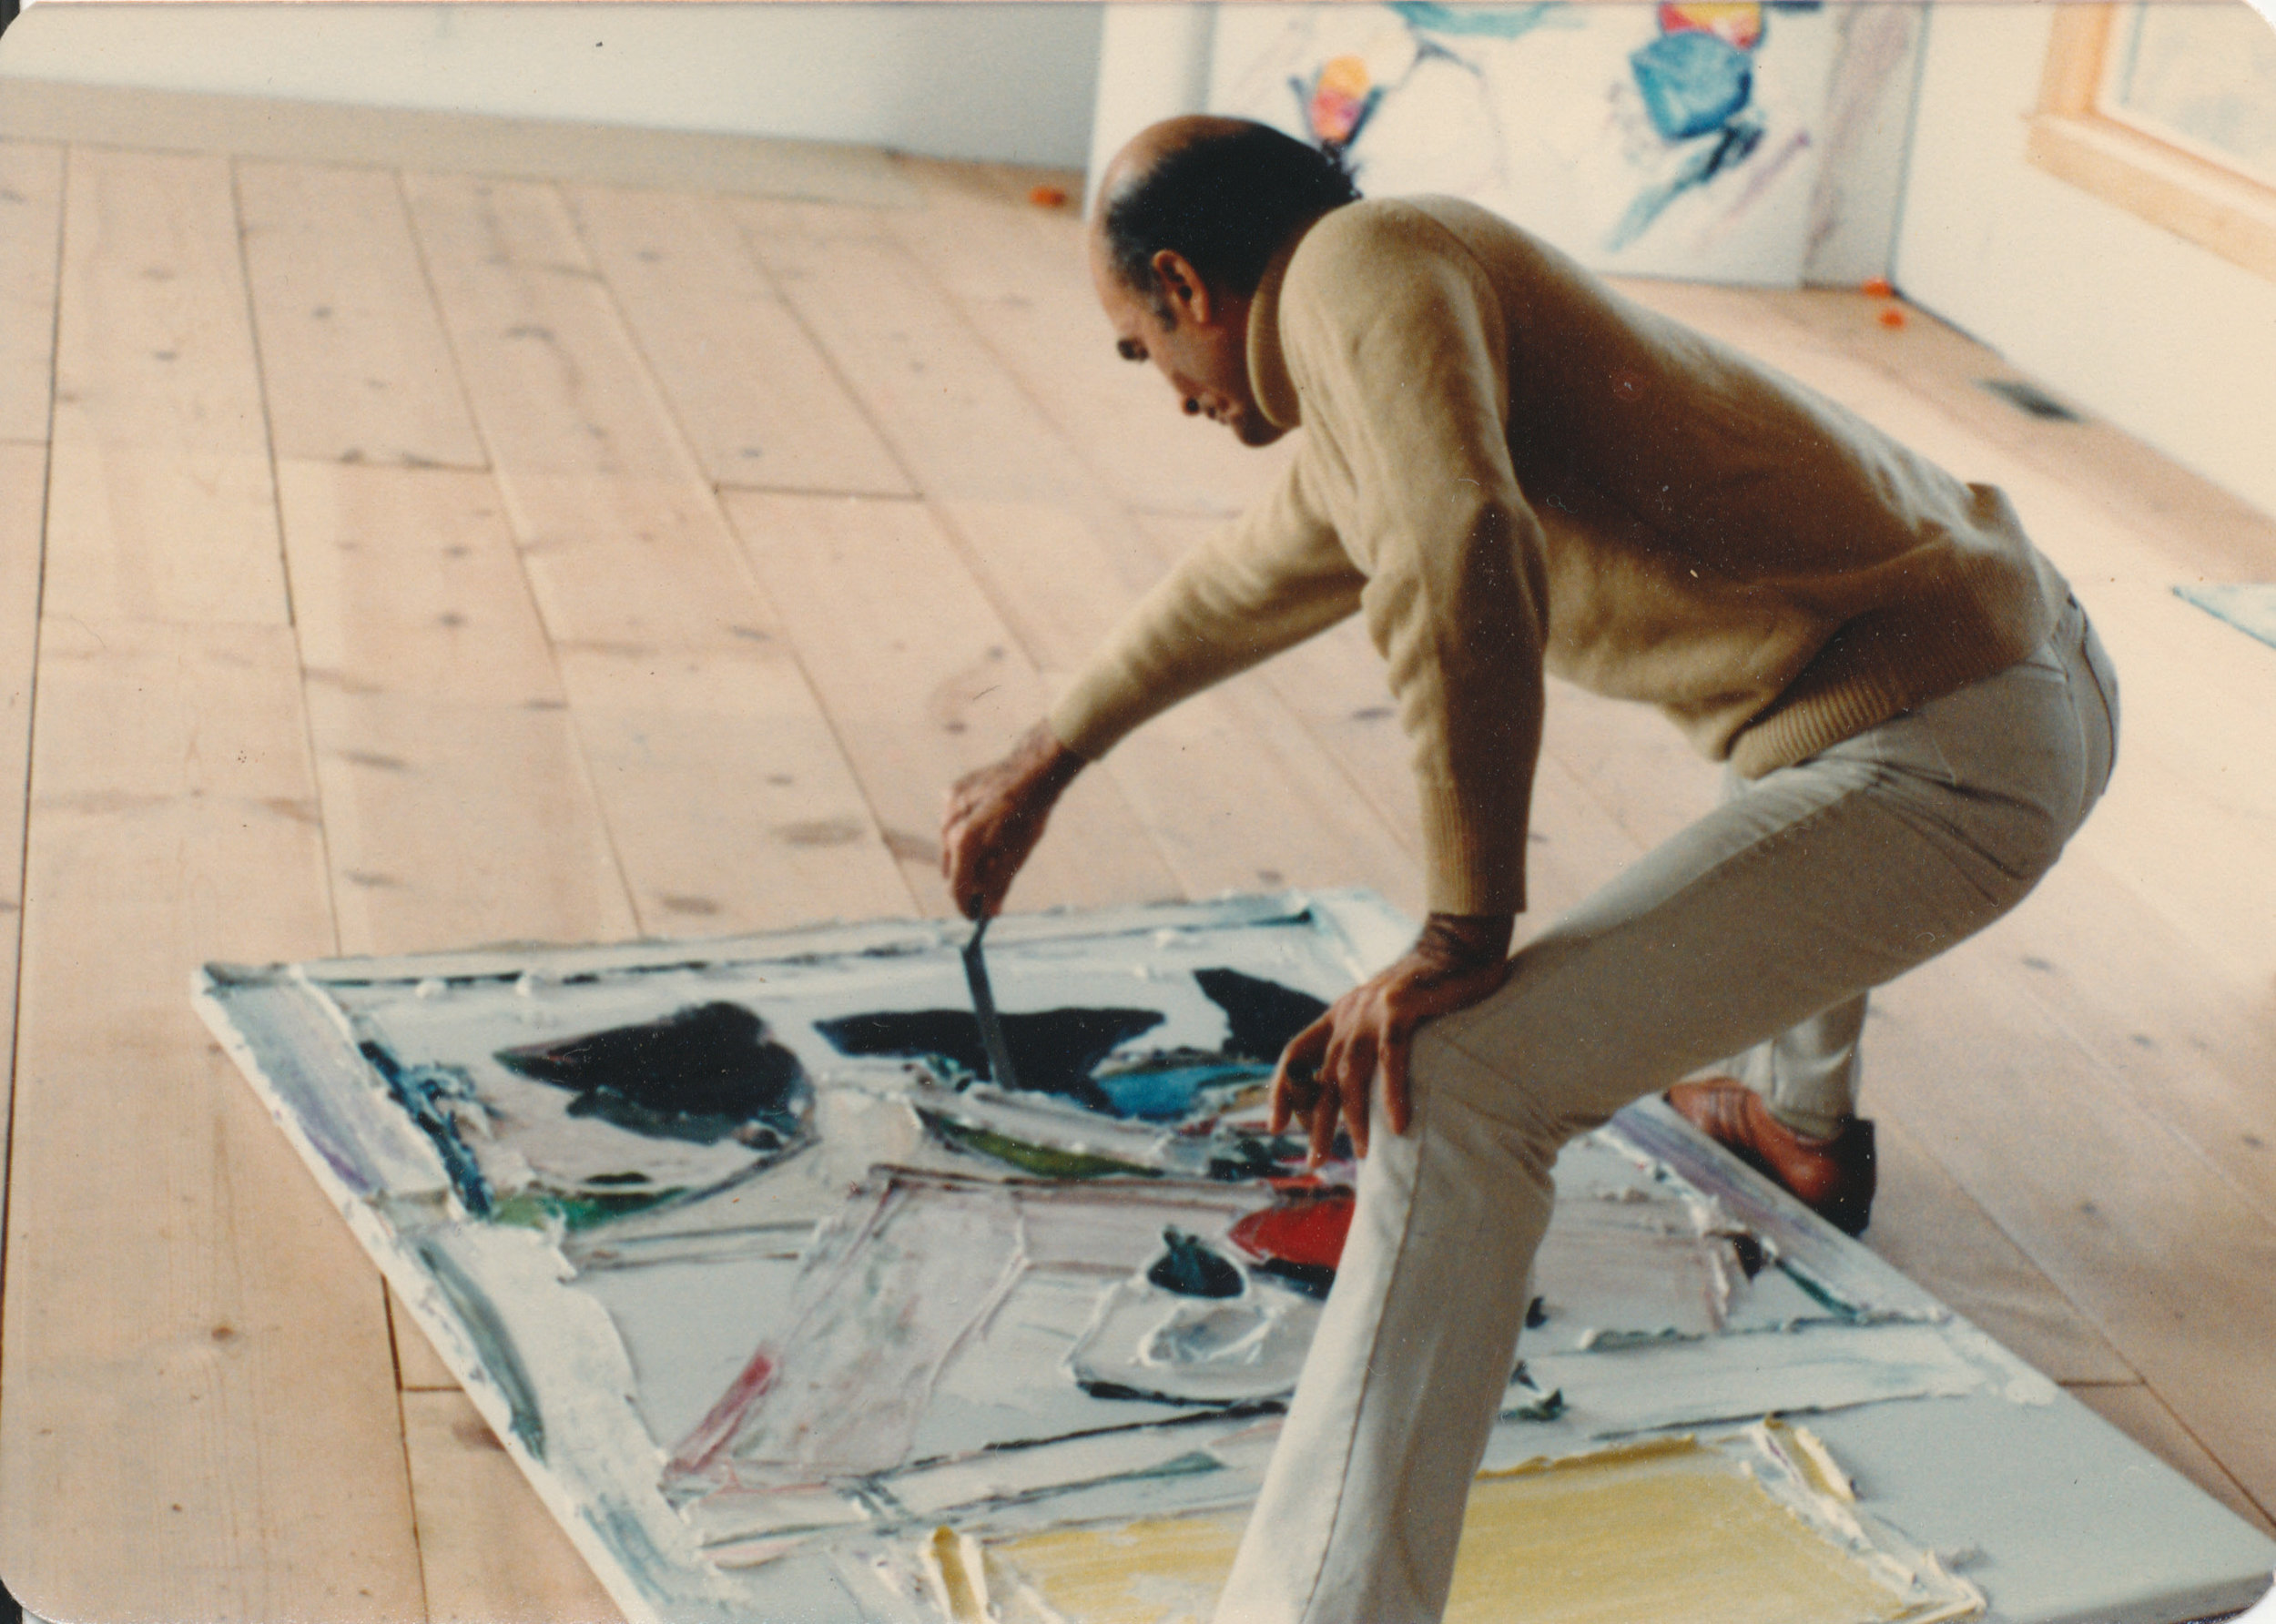 Yektai in his studio. Courtesy of the artist.